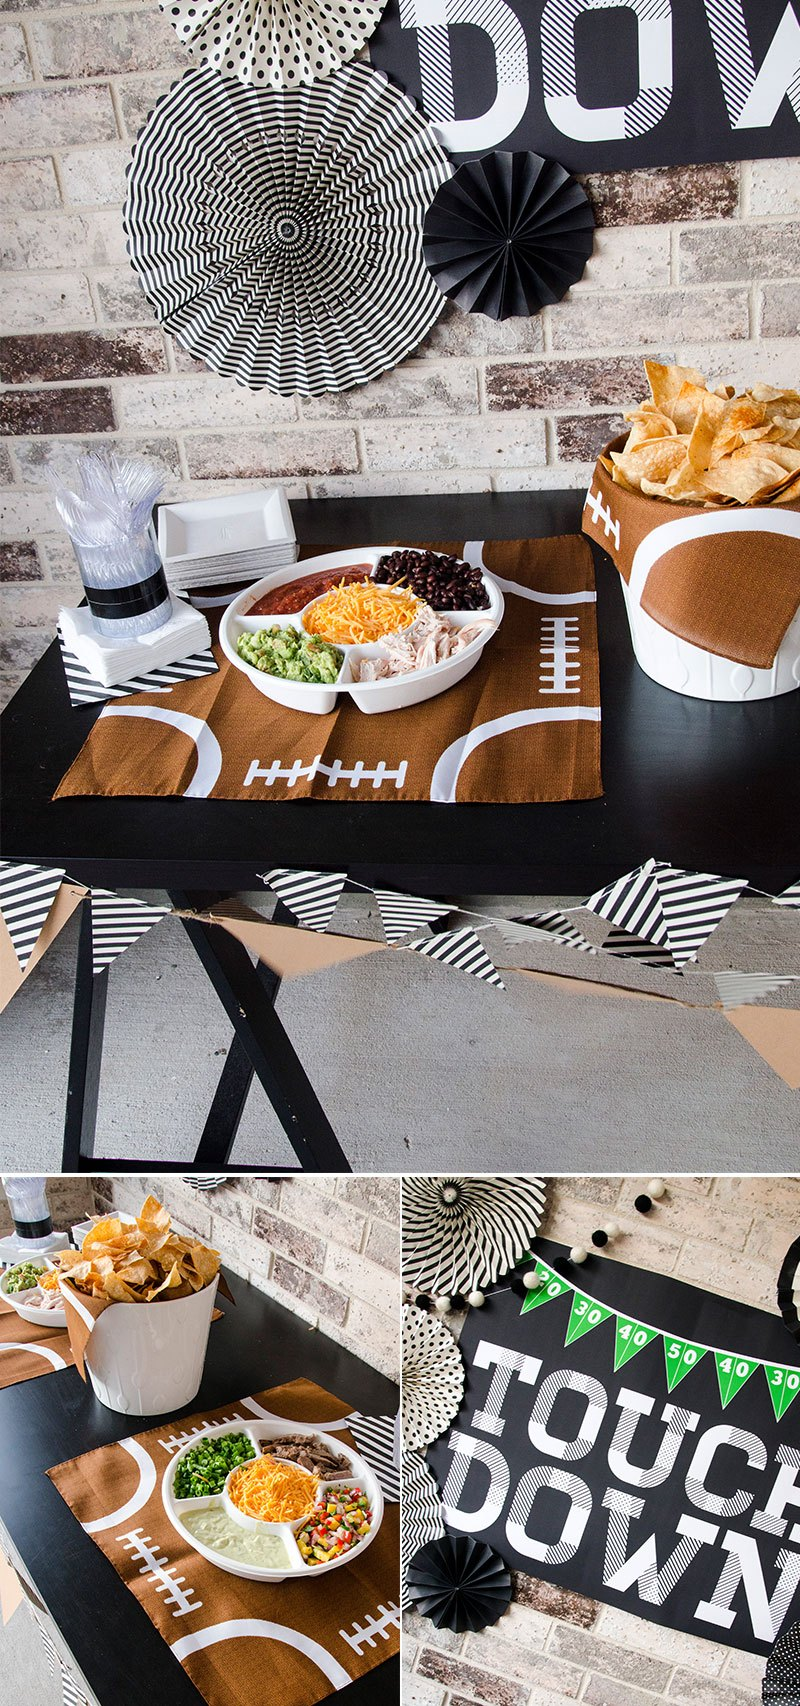 Football Game Food & Football Backdrop by Lindi Haws of Love The Day